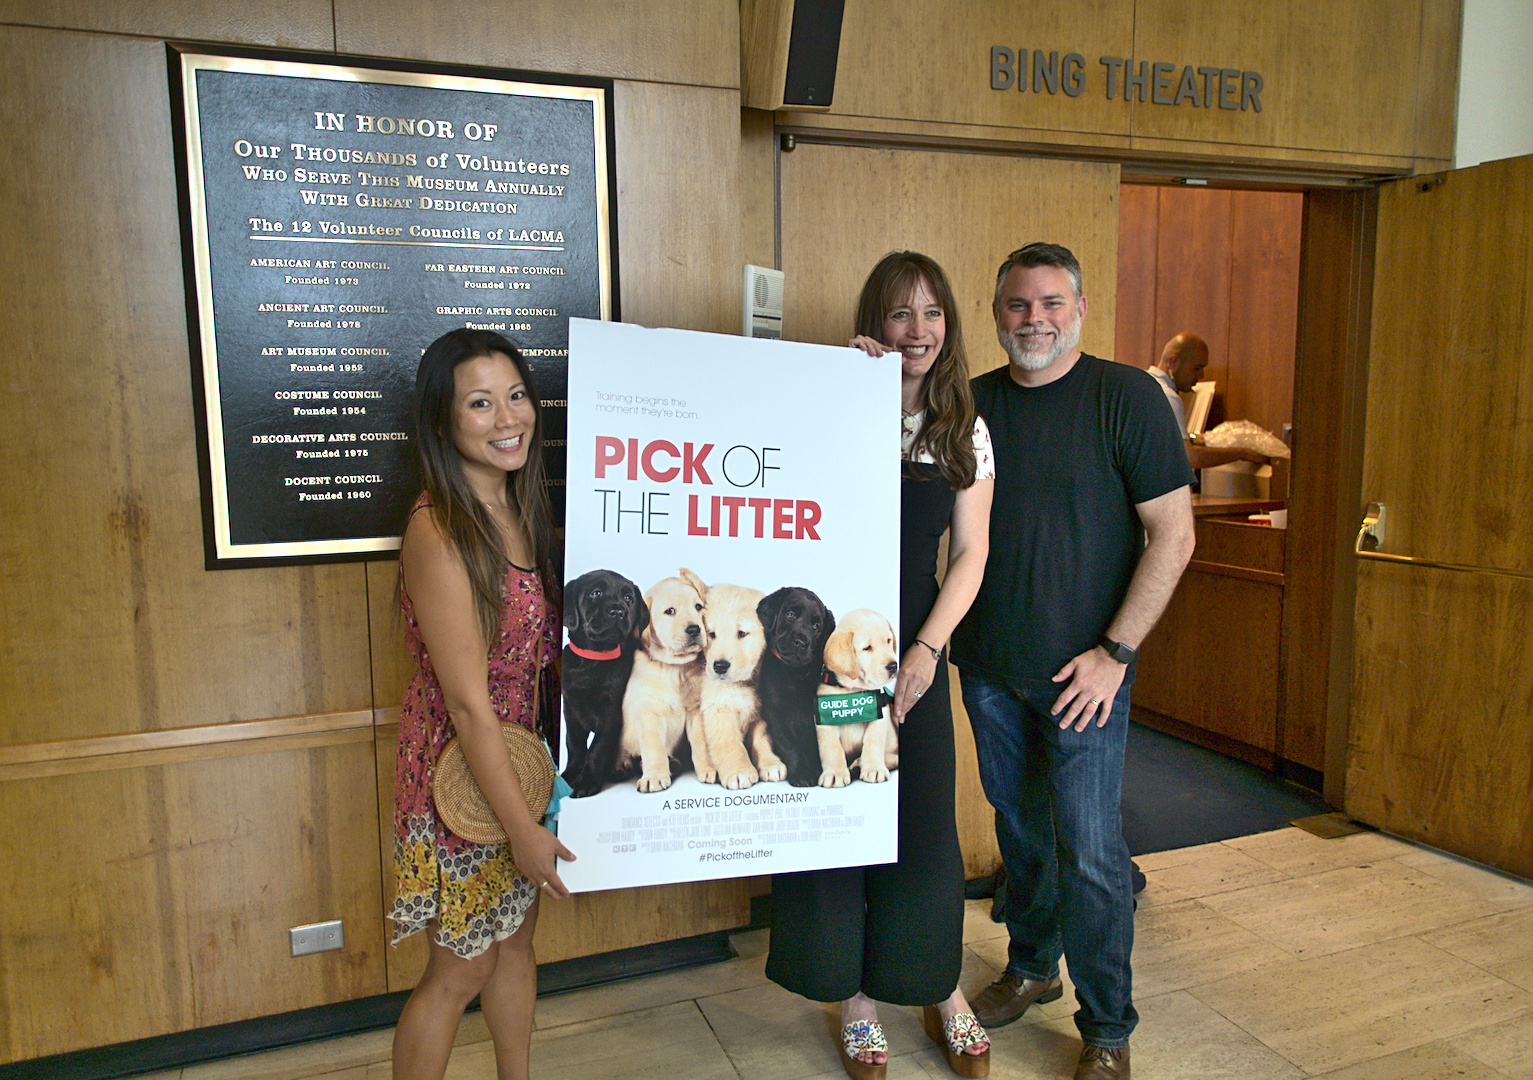 Pick of the Litter preview